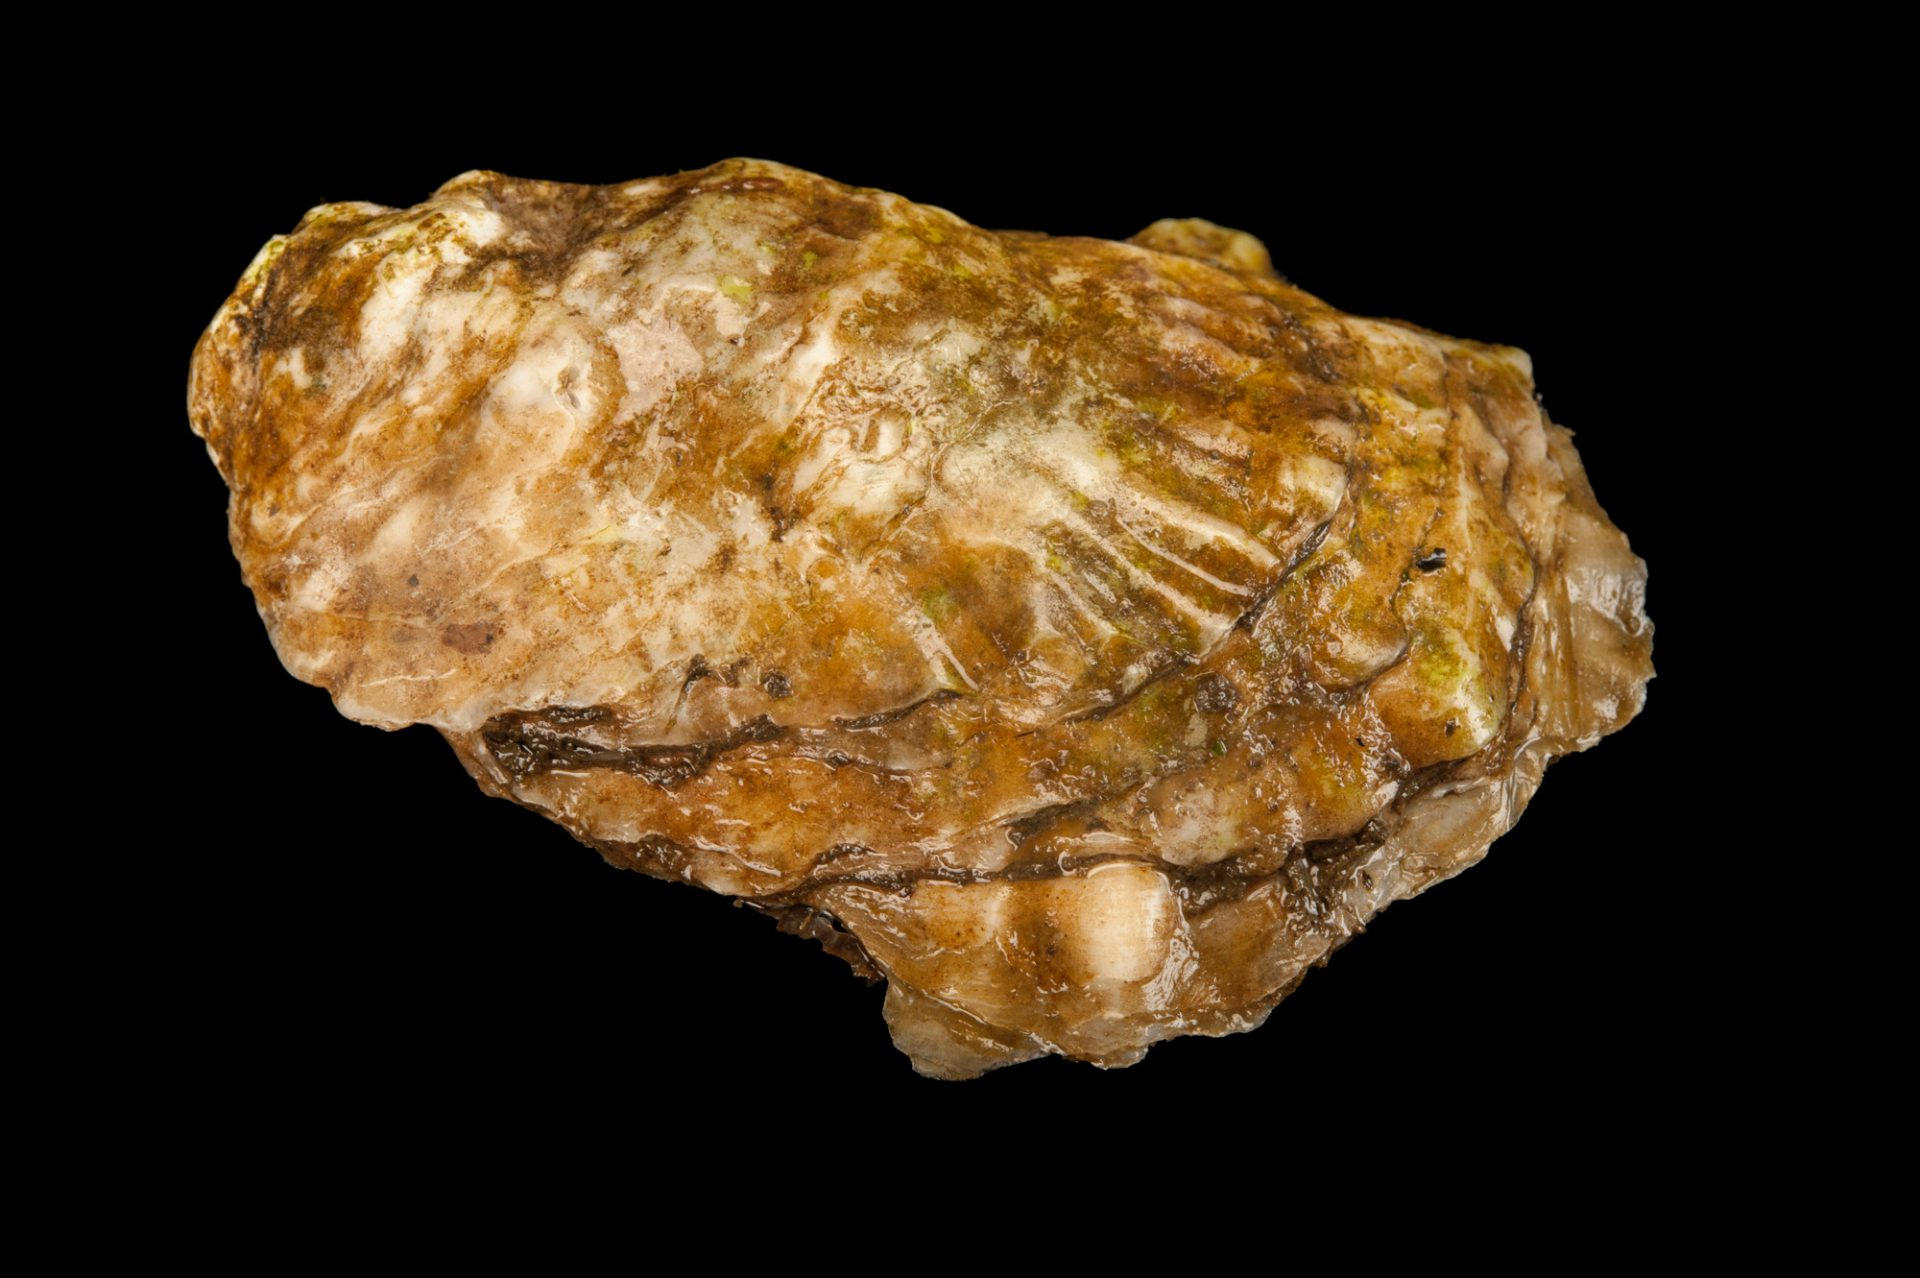 North American oyster, Crassostrea virginica, at the Sedge Island Natural Resource Education Center in the Sedge Islands Marine Conservation Zone, Barnegat Bay, New Jersey.